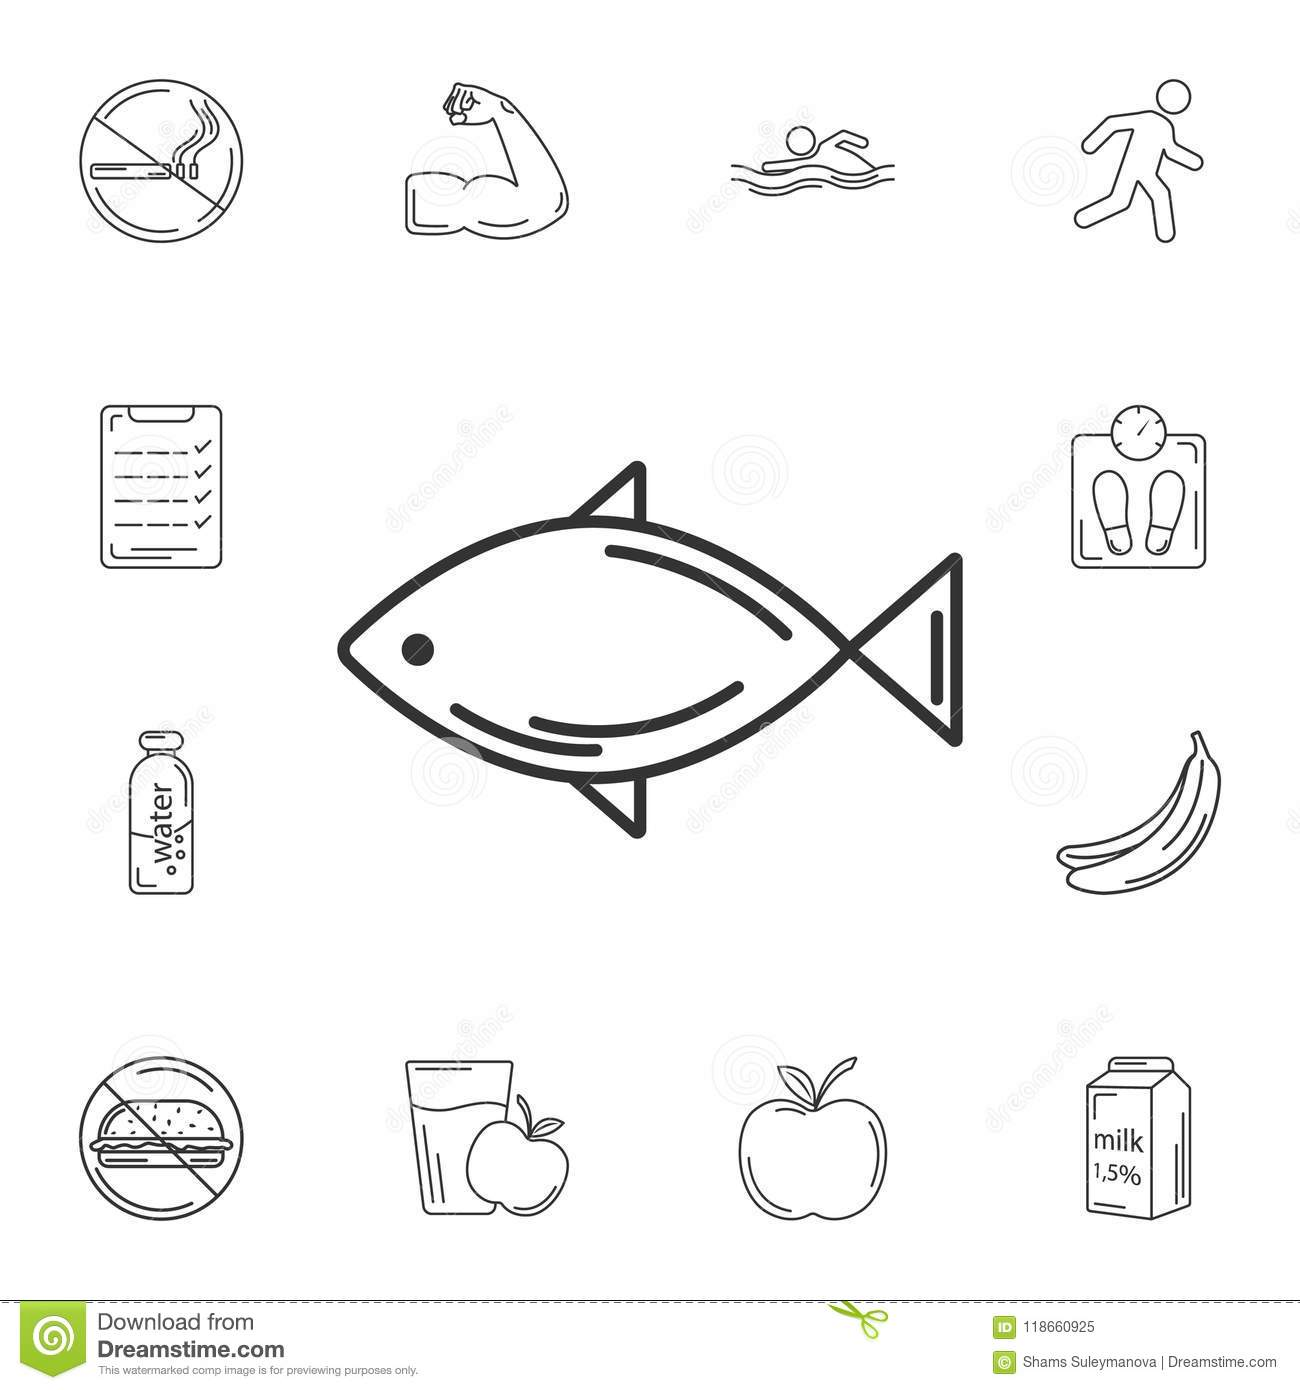 hight resolution of fish icon simple element illustration fish symbol design from gym and health collection set